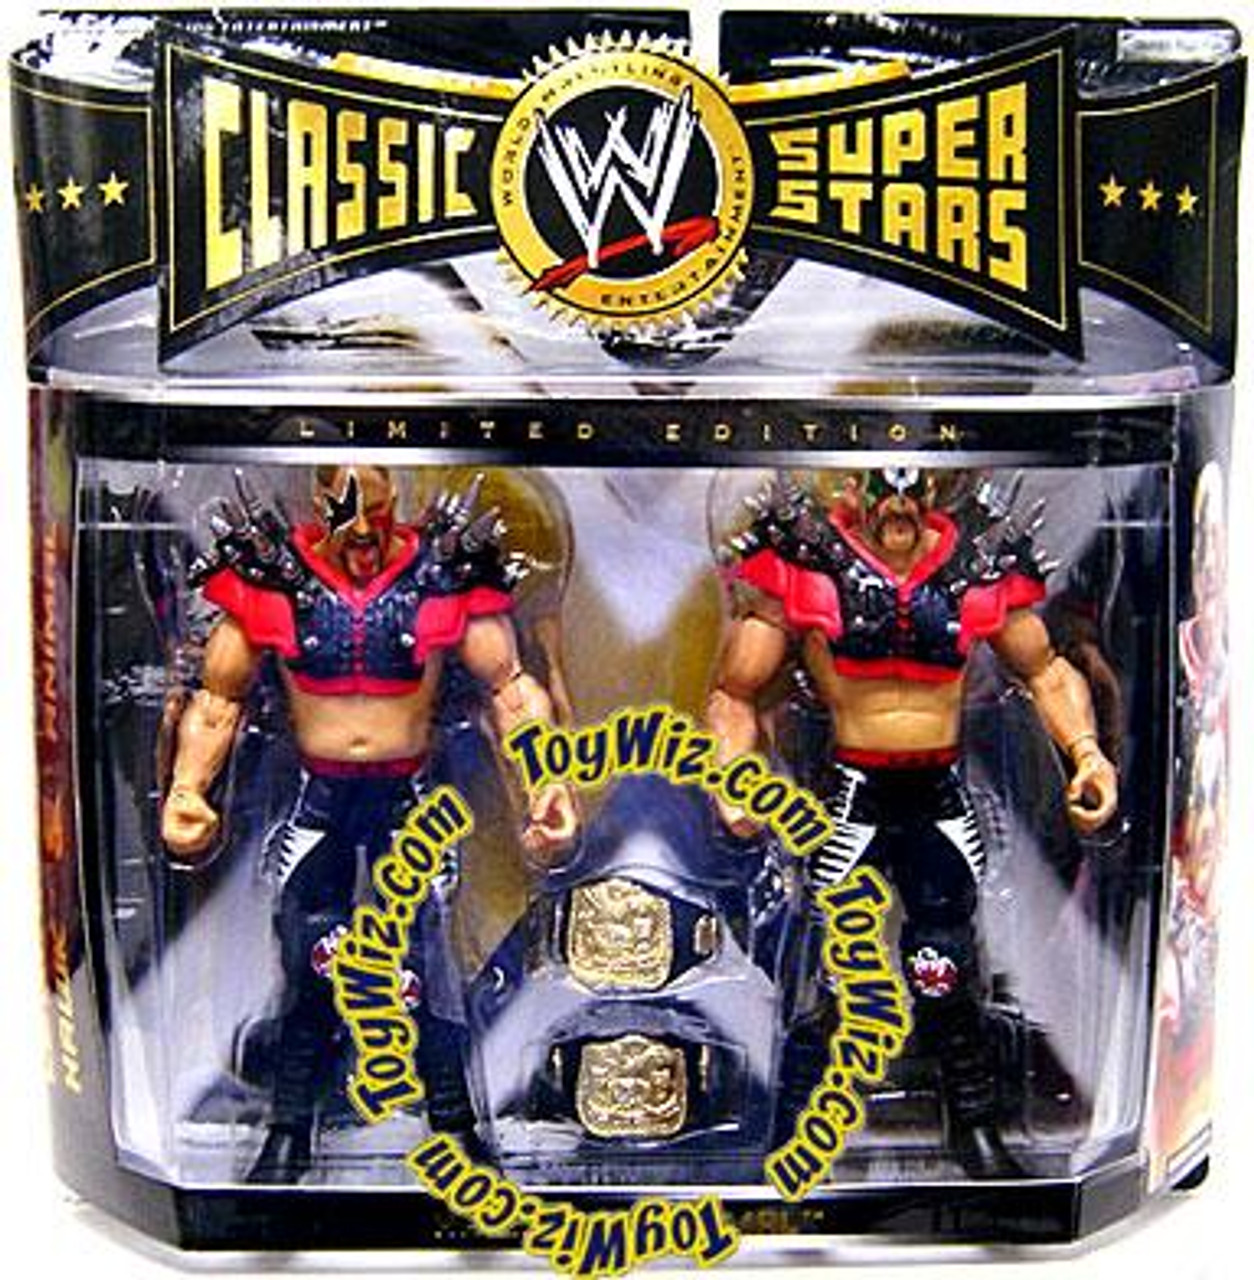 WWE Wrestling Classic Superstars Hawk & Animal Exclusive Action Figure 2-Pack